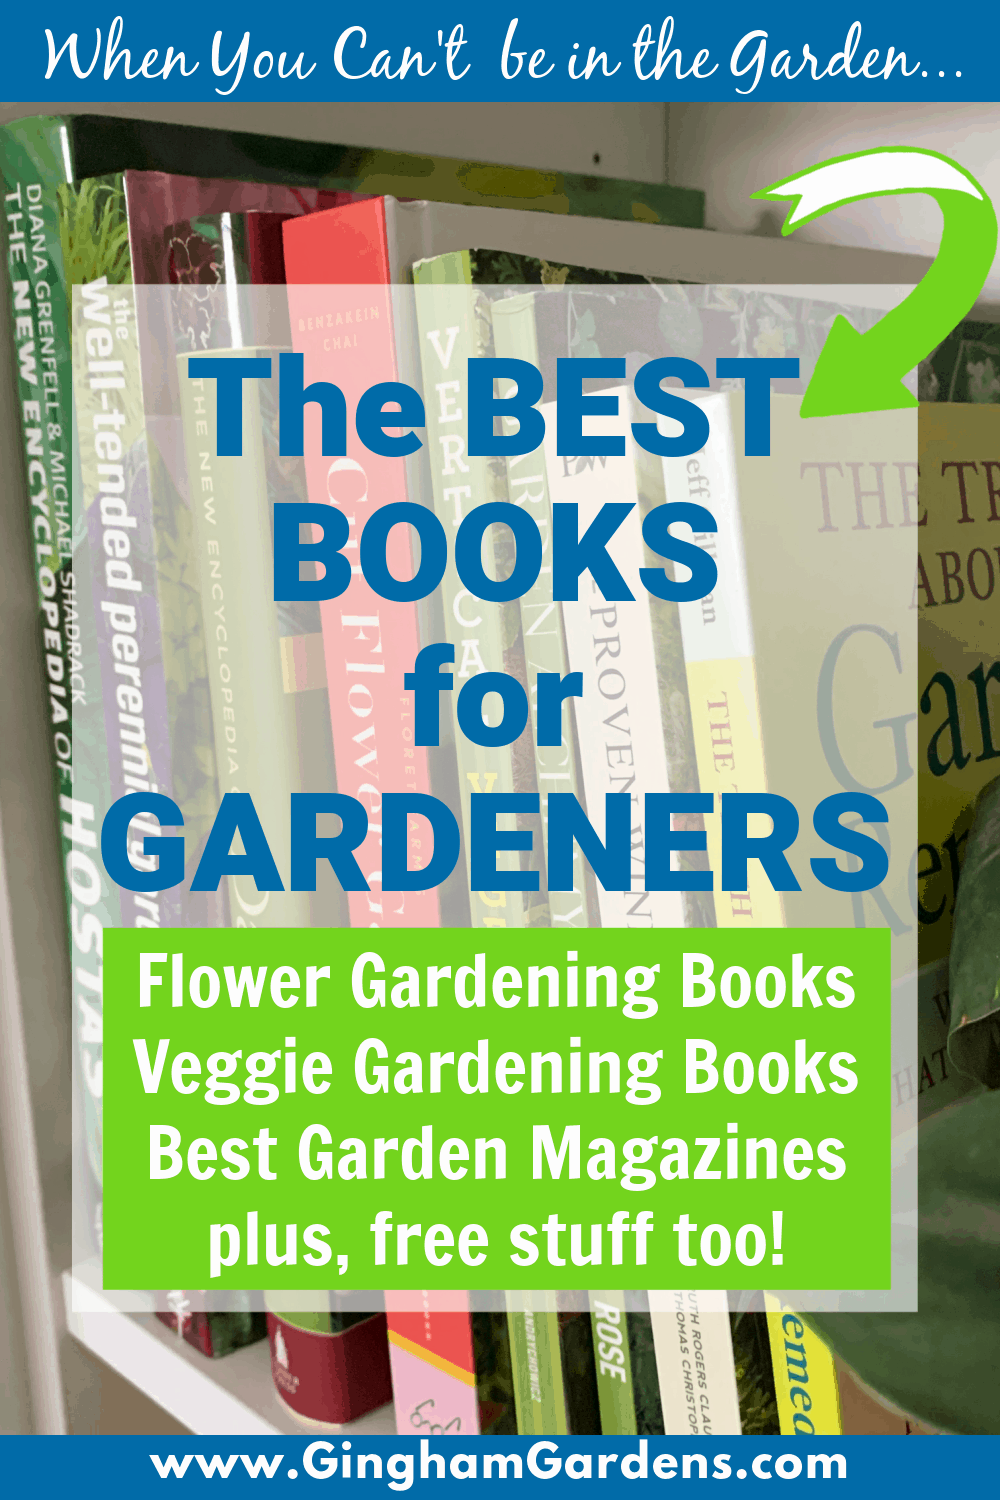 Image of Gardening Books with Text Overlay - The Best Books for Gardeners